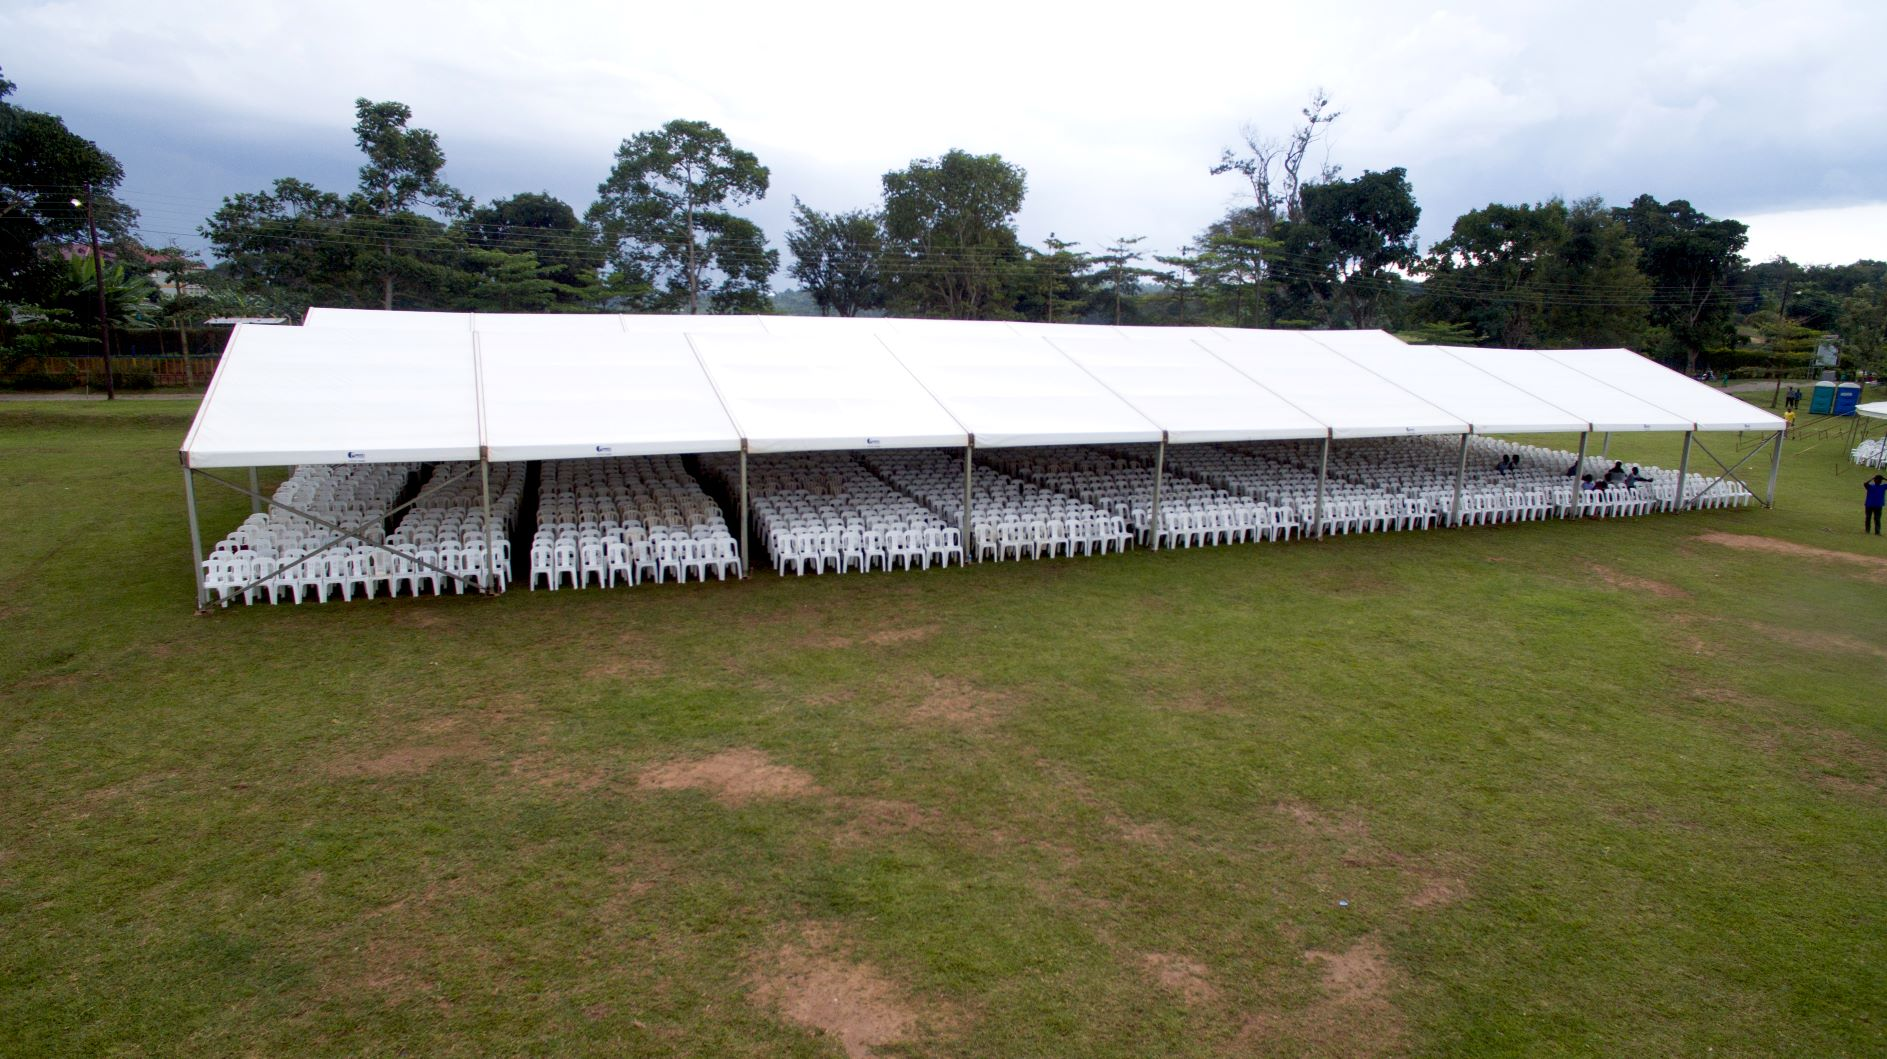 Our Multiflex tents are an excellent choice for corporate functions and university graduations